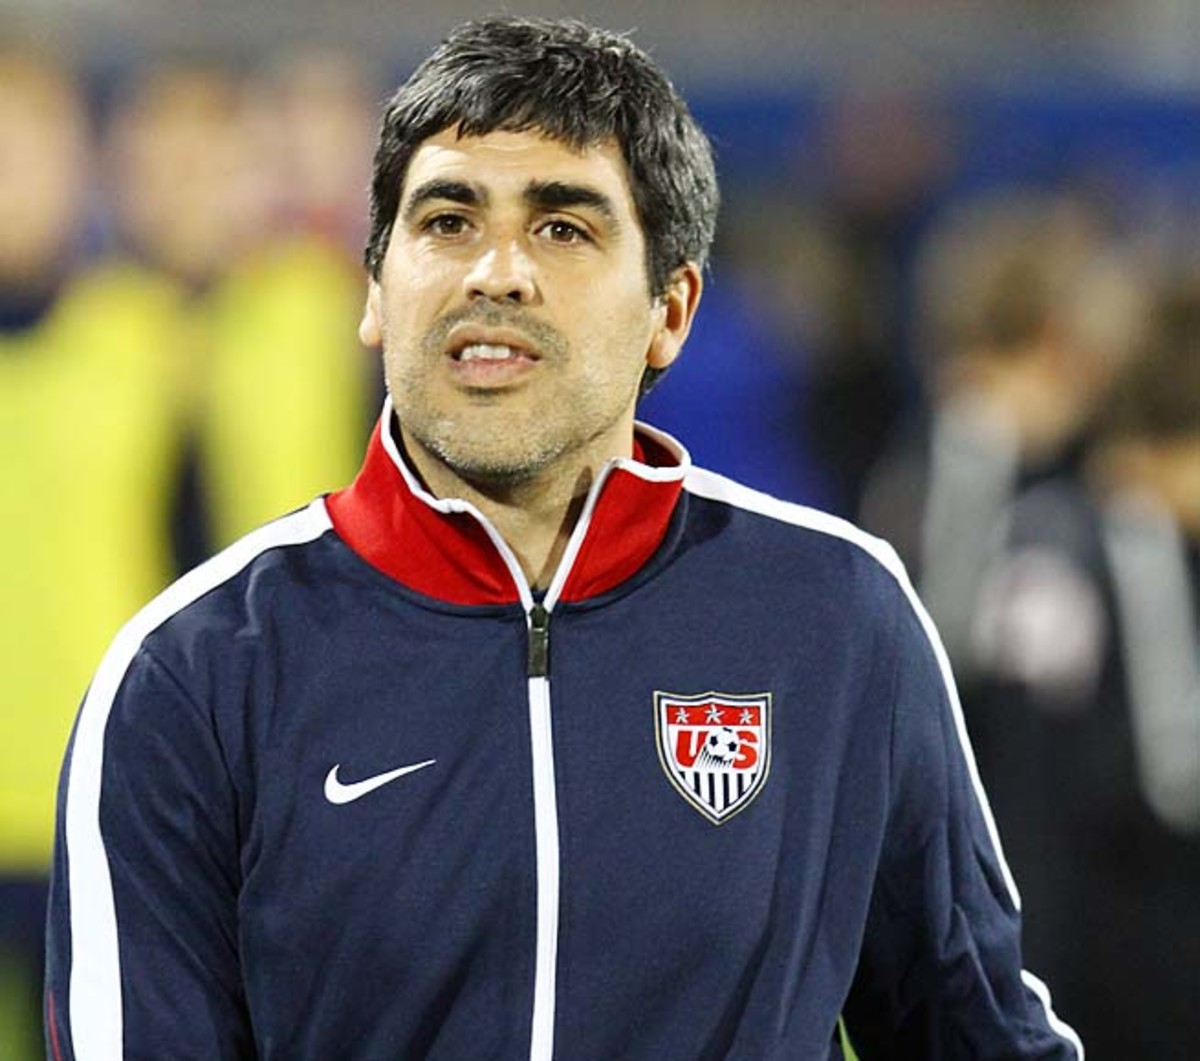 Claudio Reyna played for the U.S. in three World Cups -- 1998, 2002 and 2006.